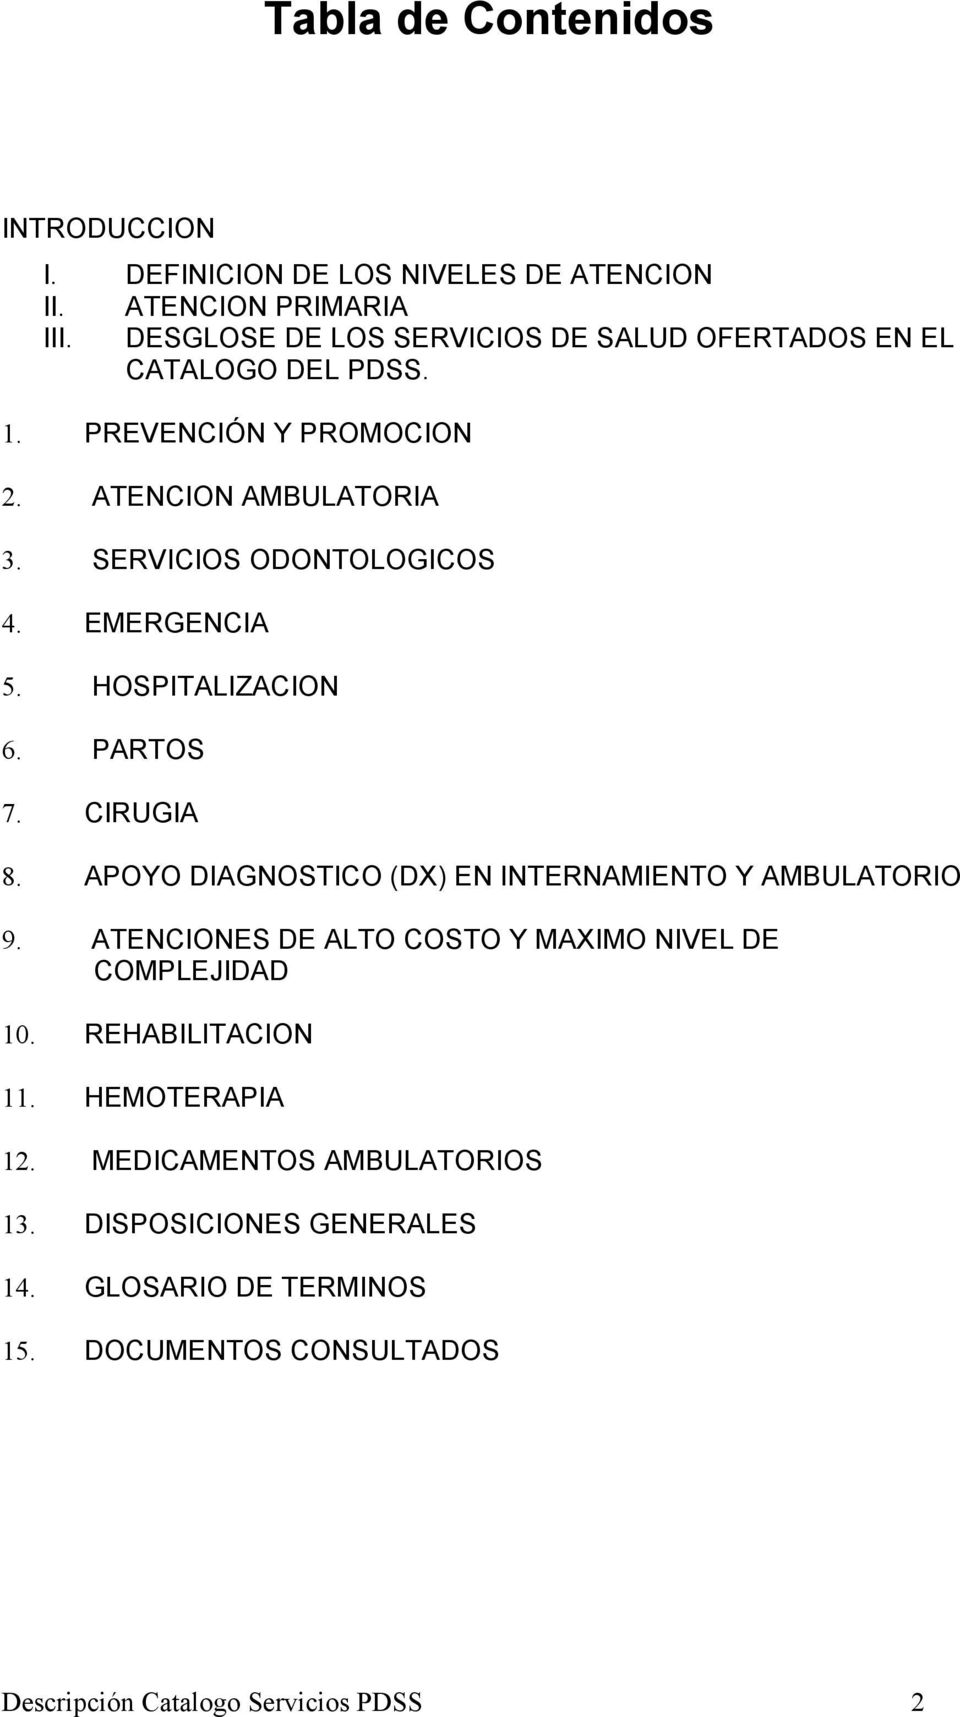 EMERGENCIA 5. HOSPITALIZACION 6. PARTOS 7. CIRUGIA 8. APOYO DIAGNOSTICO (DX) EN INTERNAMIENTO Y AMBULATORIO 9.